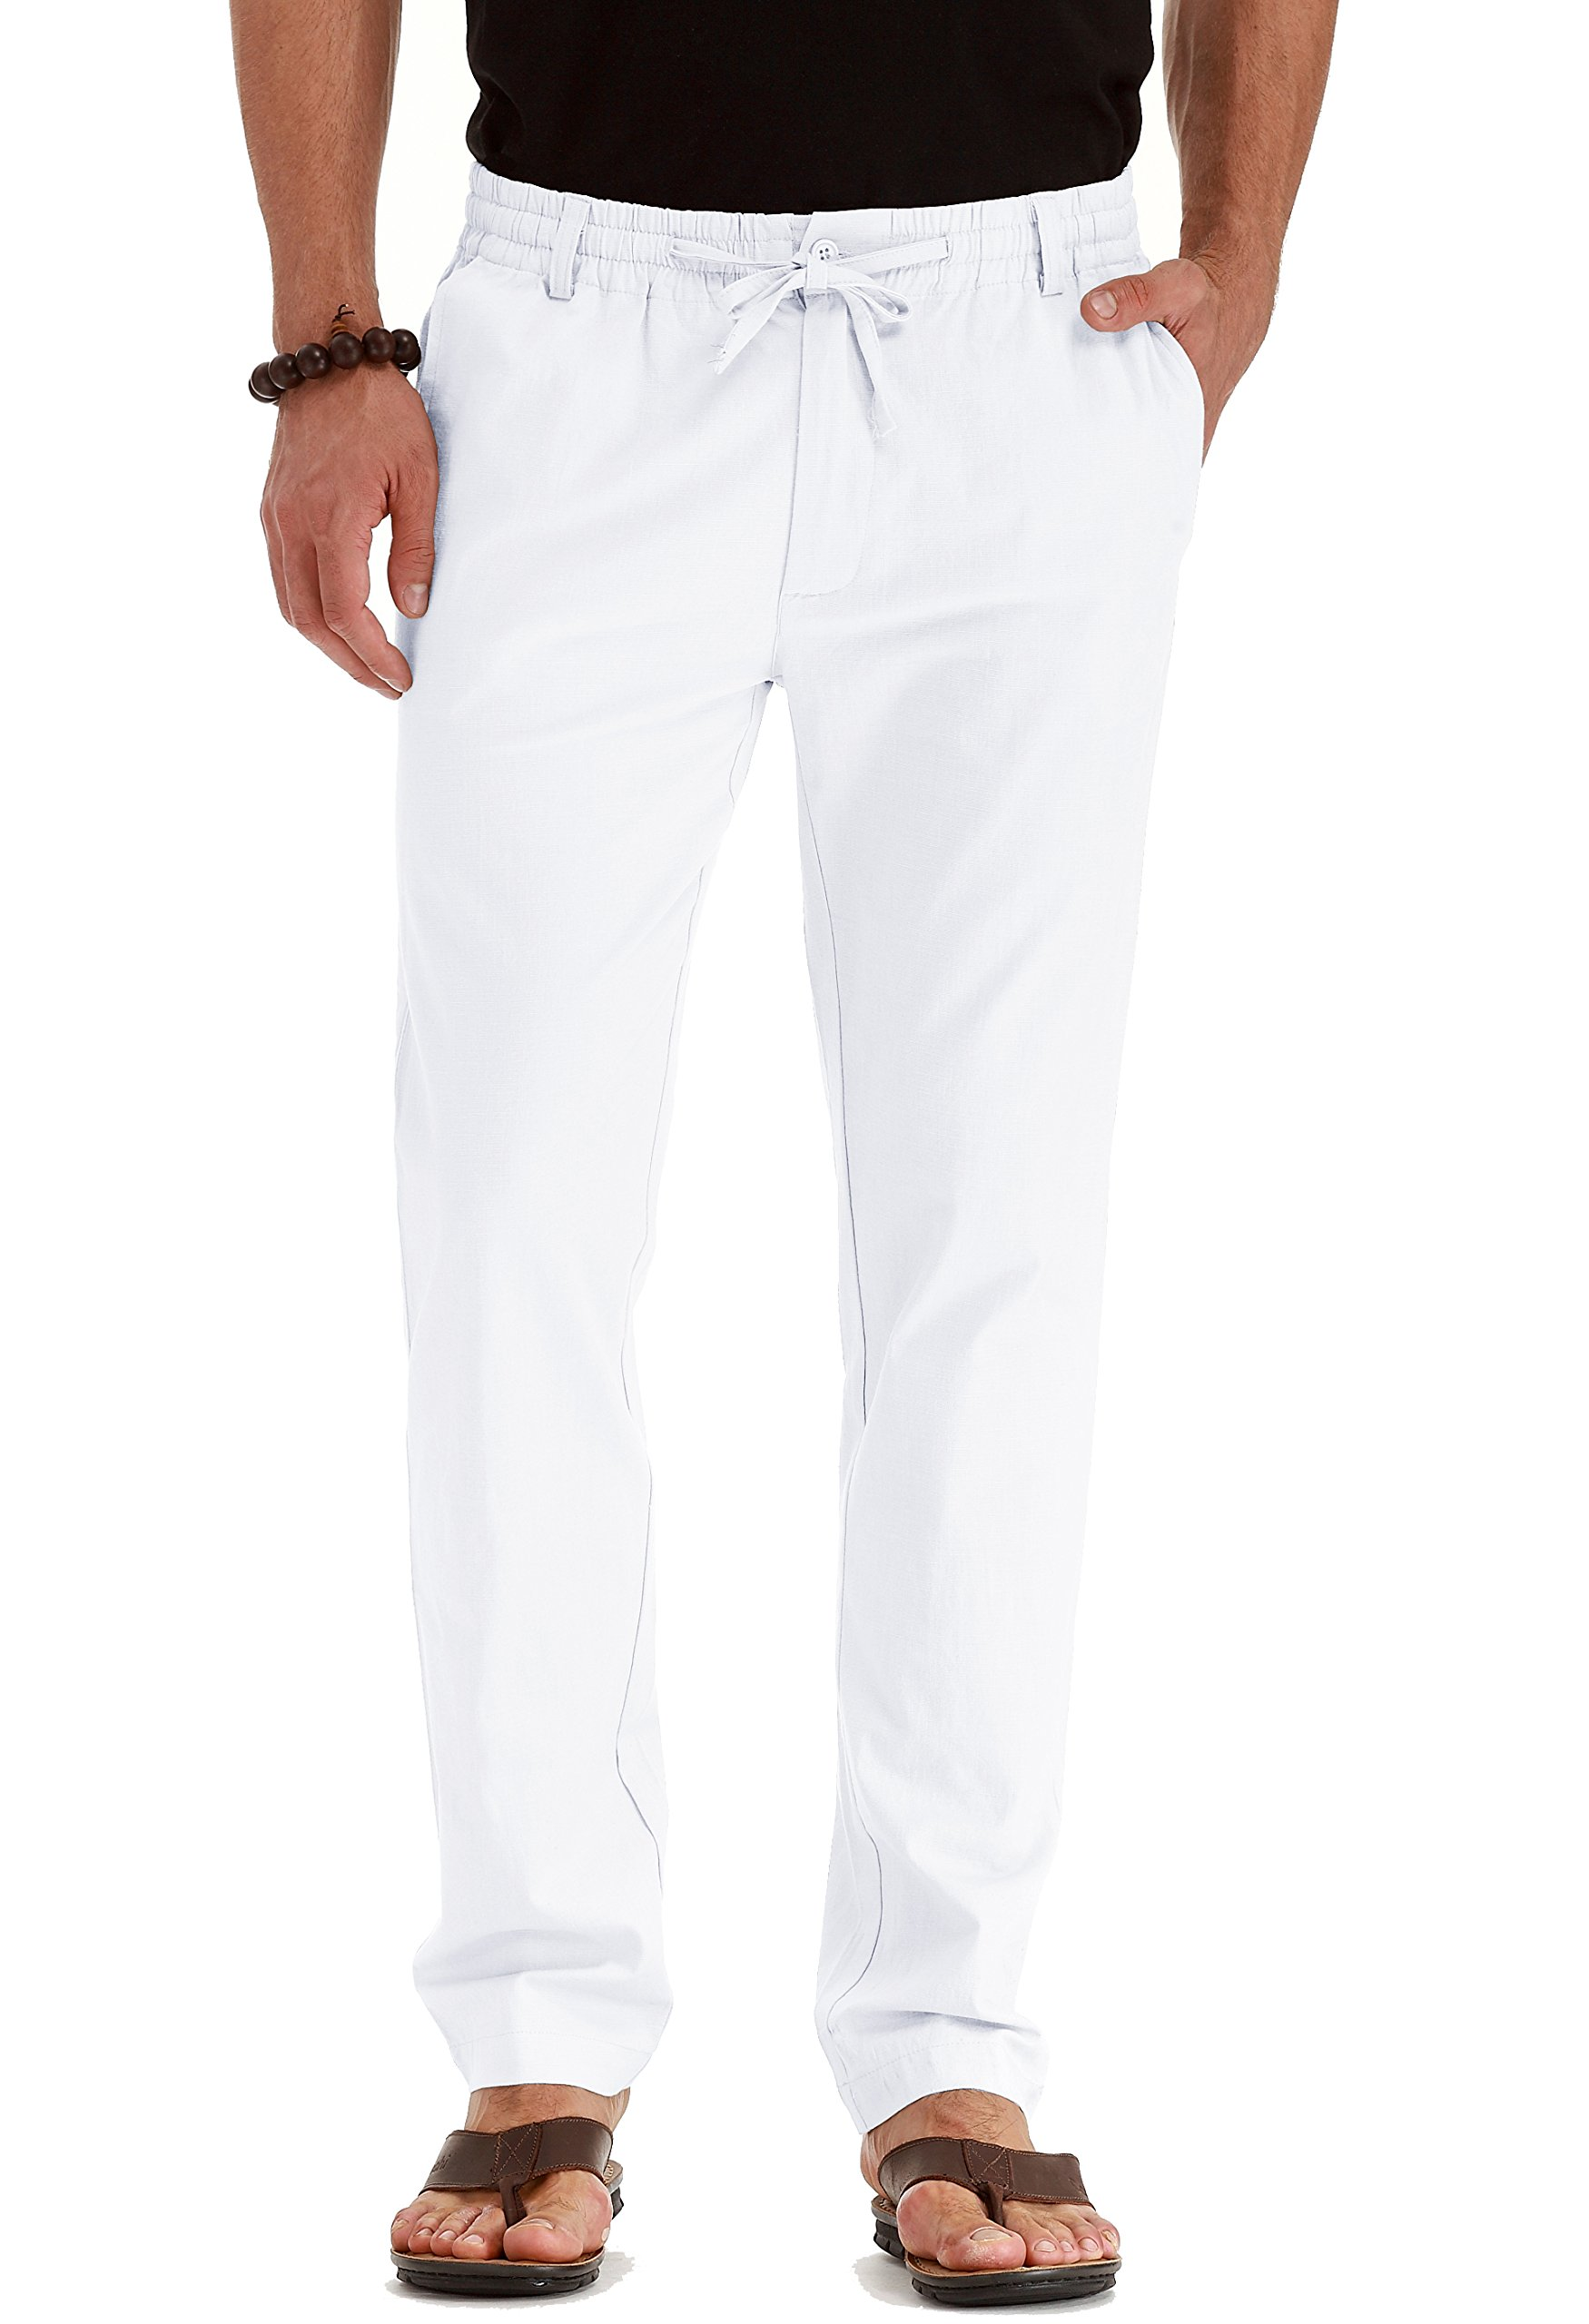 Mr.Zhang Men's Drawstring Casual Beach Trousers Linen Summer Pants Pure White-US 36 by Mr.Zhang